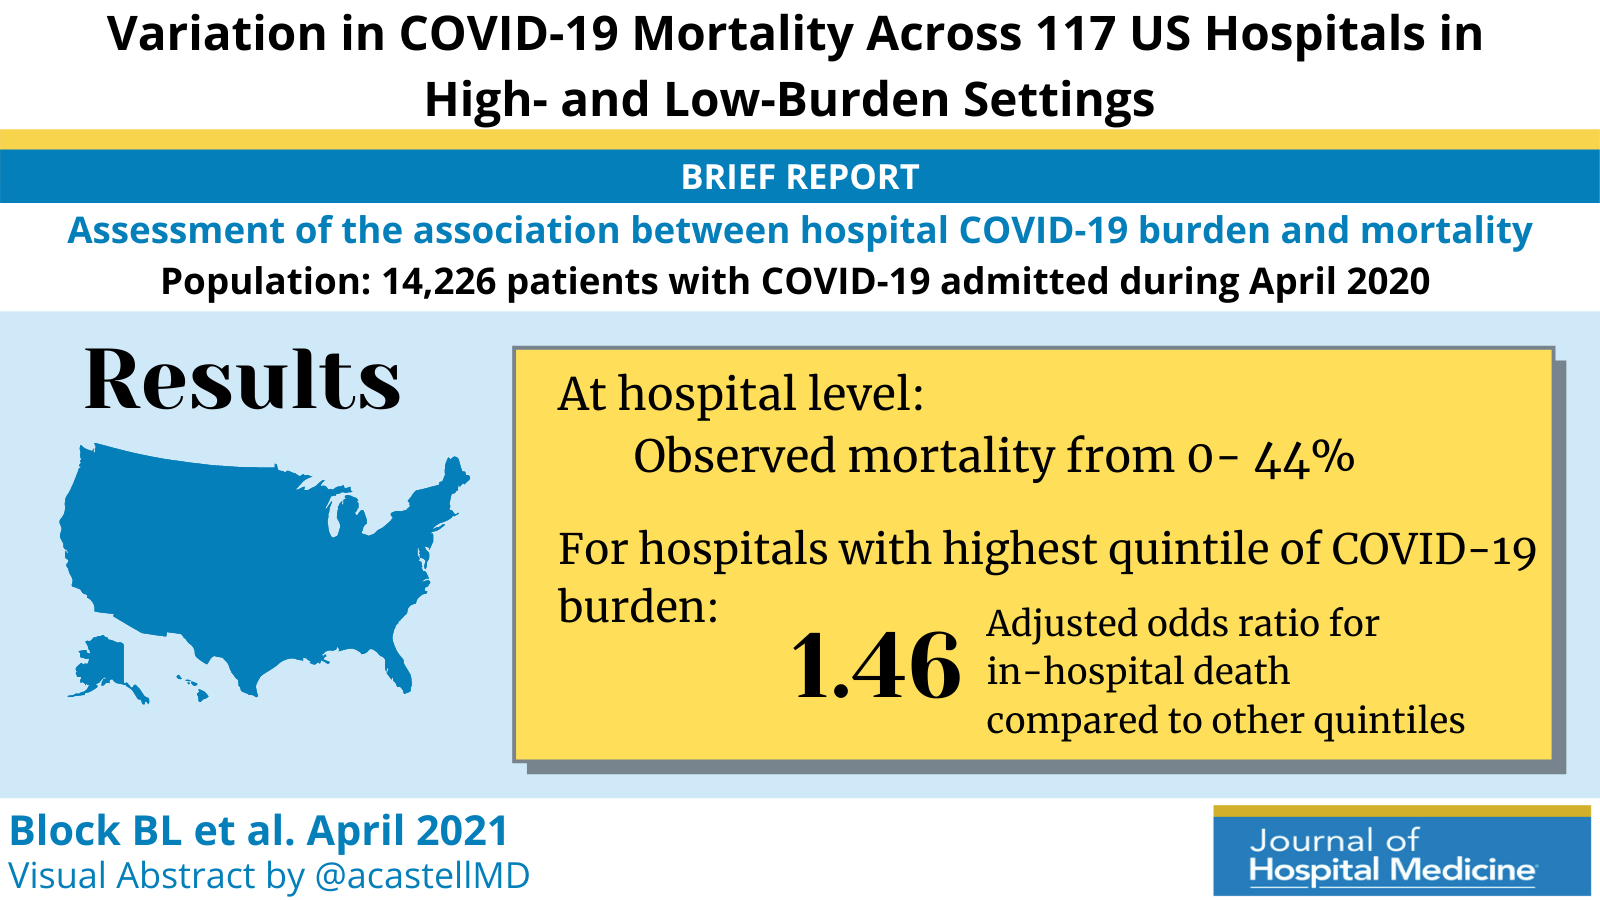 Variation in COVID-19 Mortality Across 117 US Hospitals in High- and Low-Burden Settings